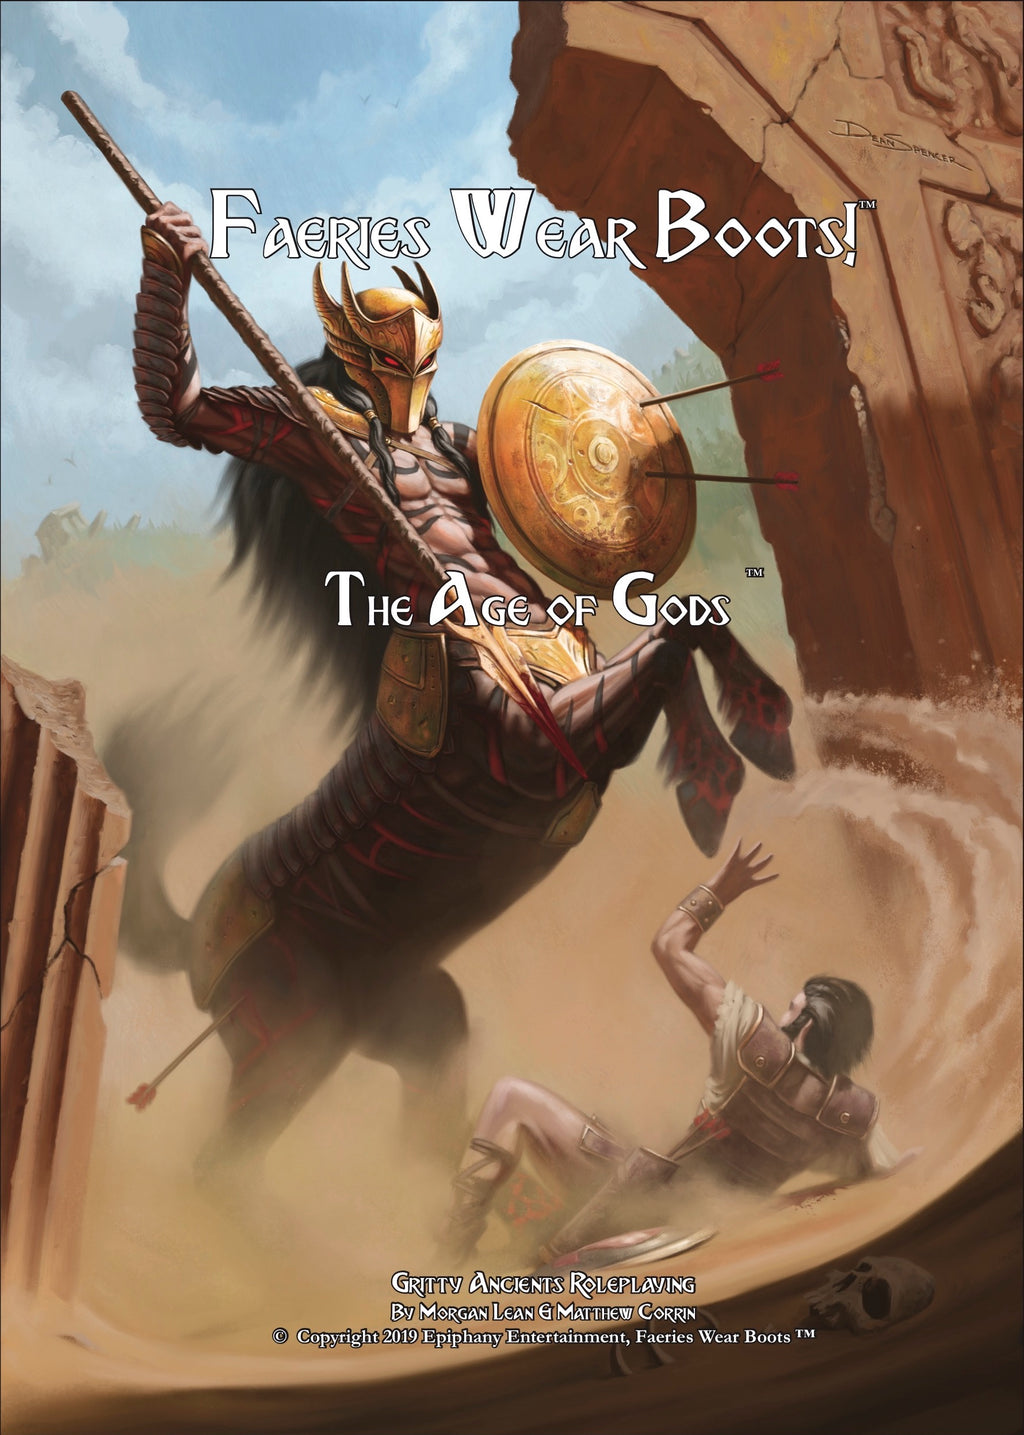 Faeries Wear Boots: The Age of Gods Hardcover Book